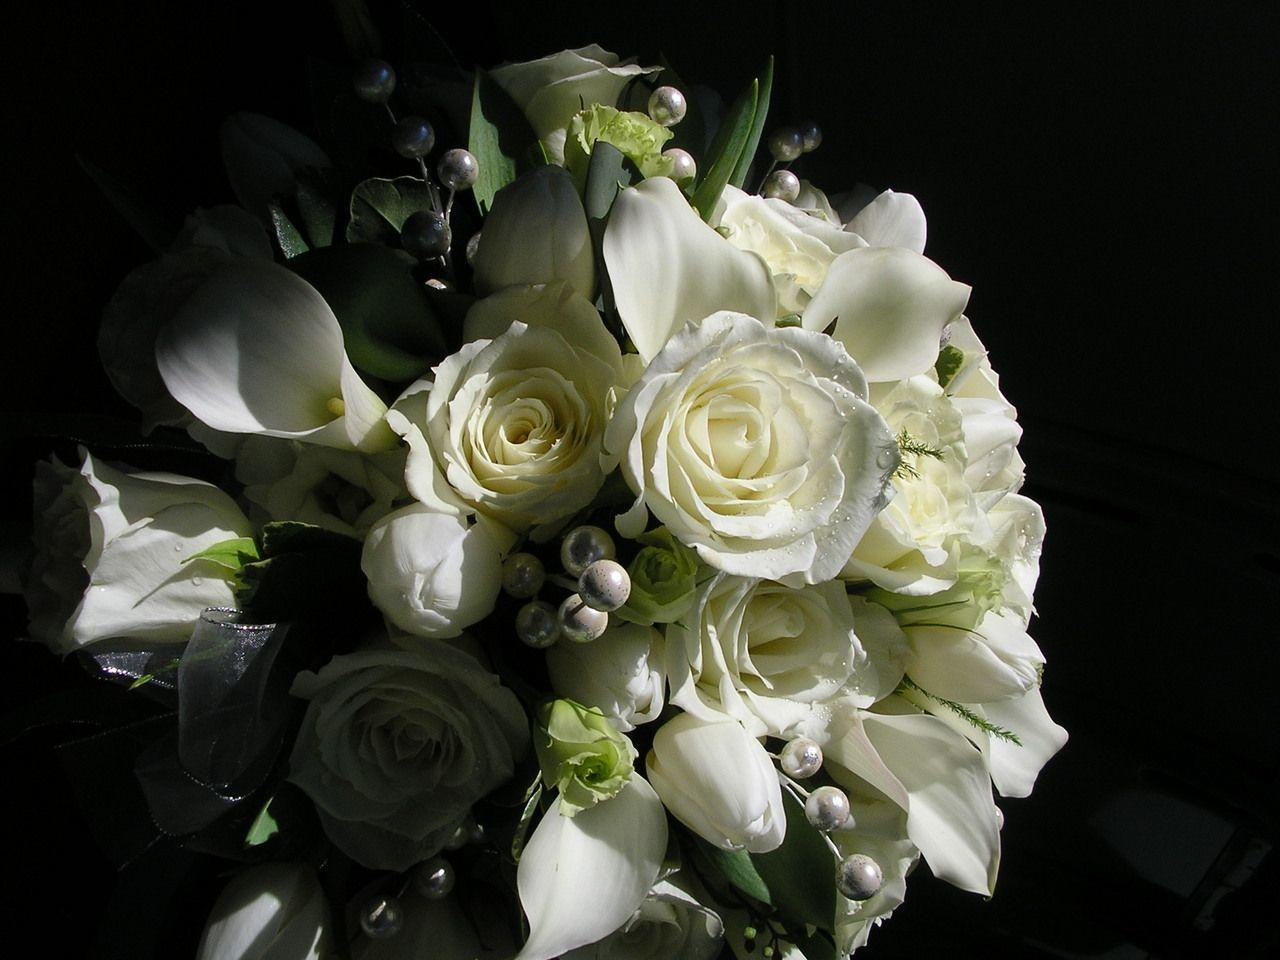 bouquet black background wallpaper - photo #1